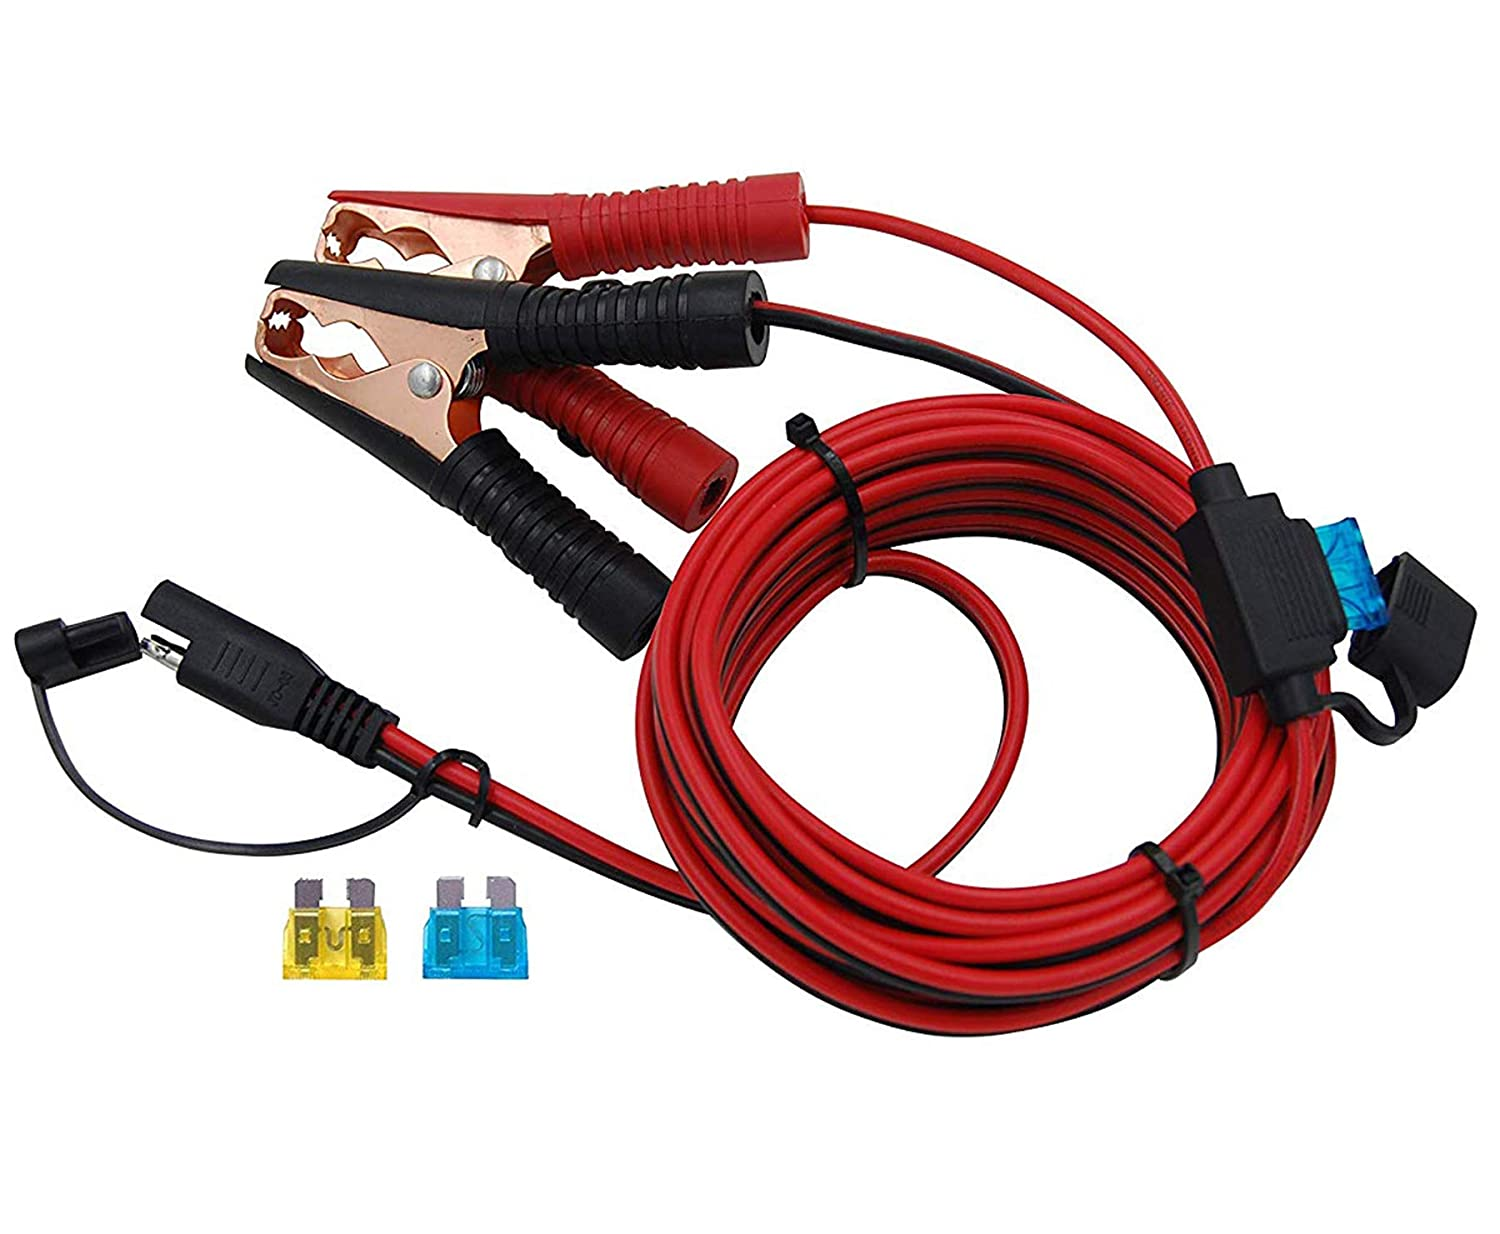 CU10330B CUZEC 6FT 16AWG 15A Battery Alligator Clip to SAE Connector//12V SAE Quick Release Adapter to Alligator Clips Quick Disconnect Cable